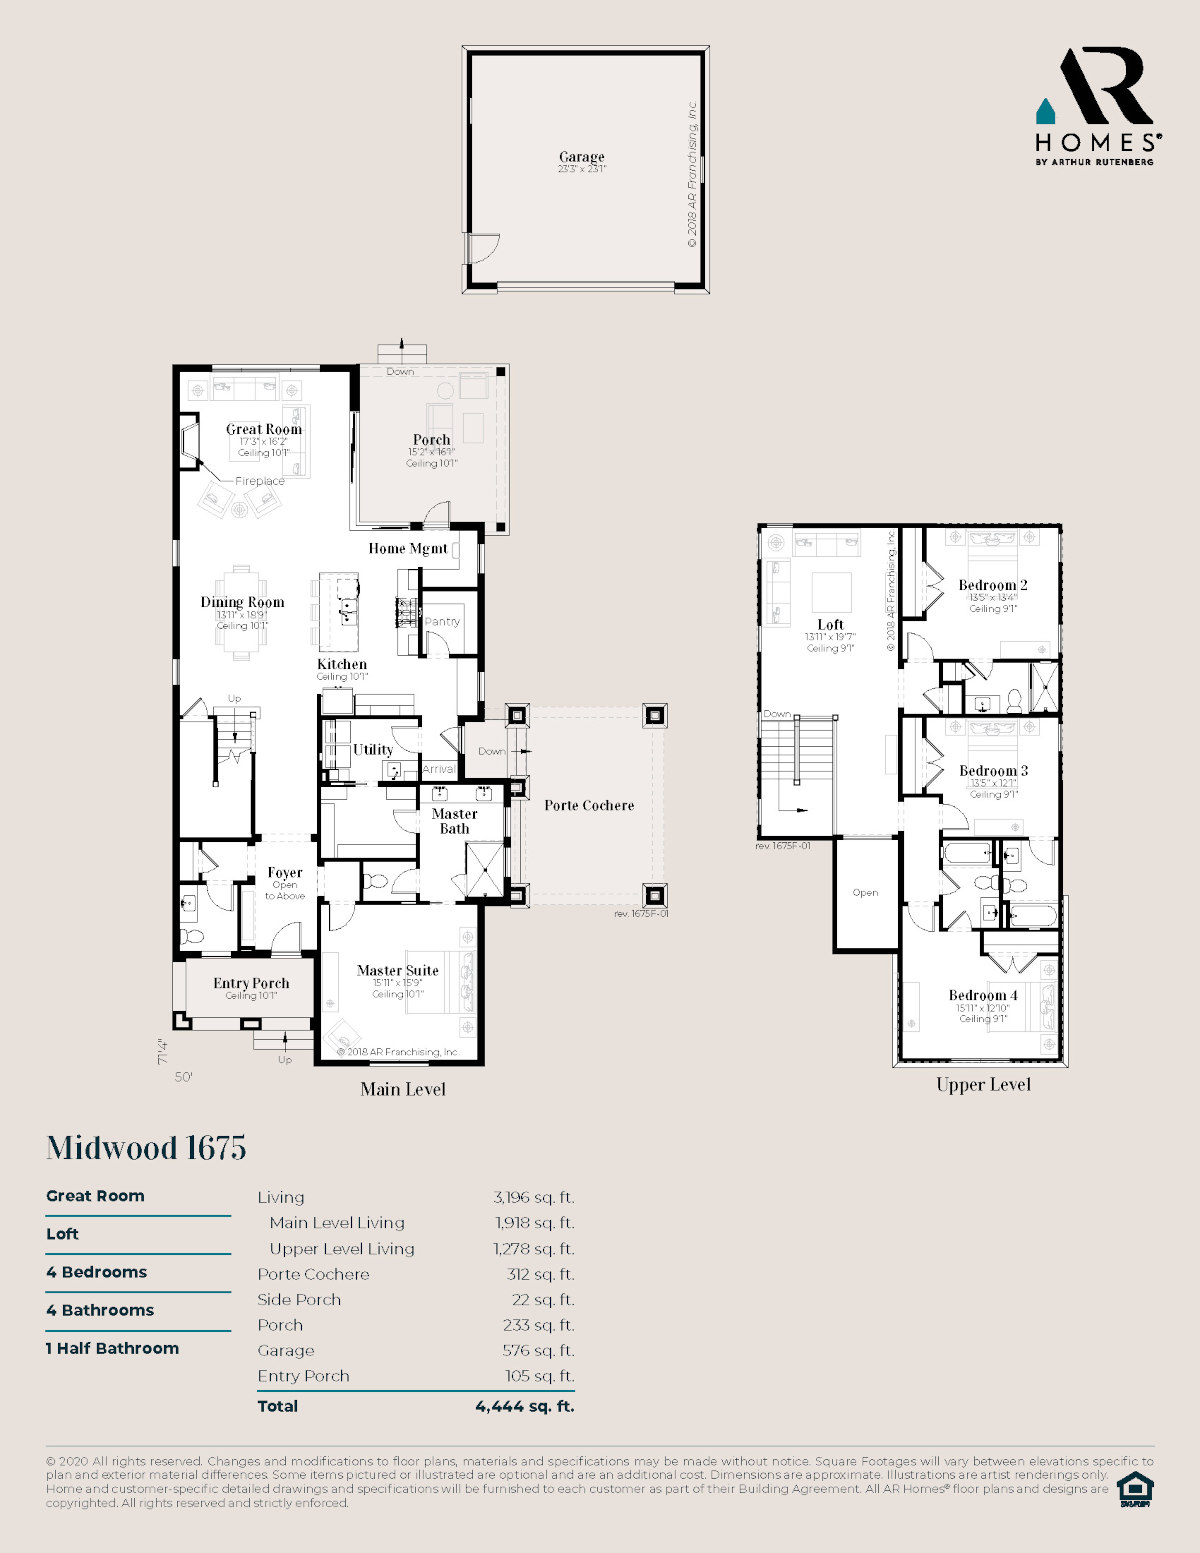 Midwood 1675 Floor Plan